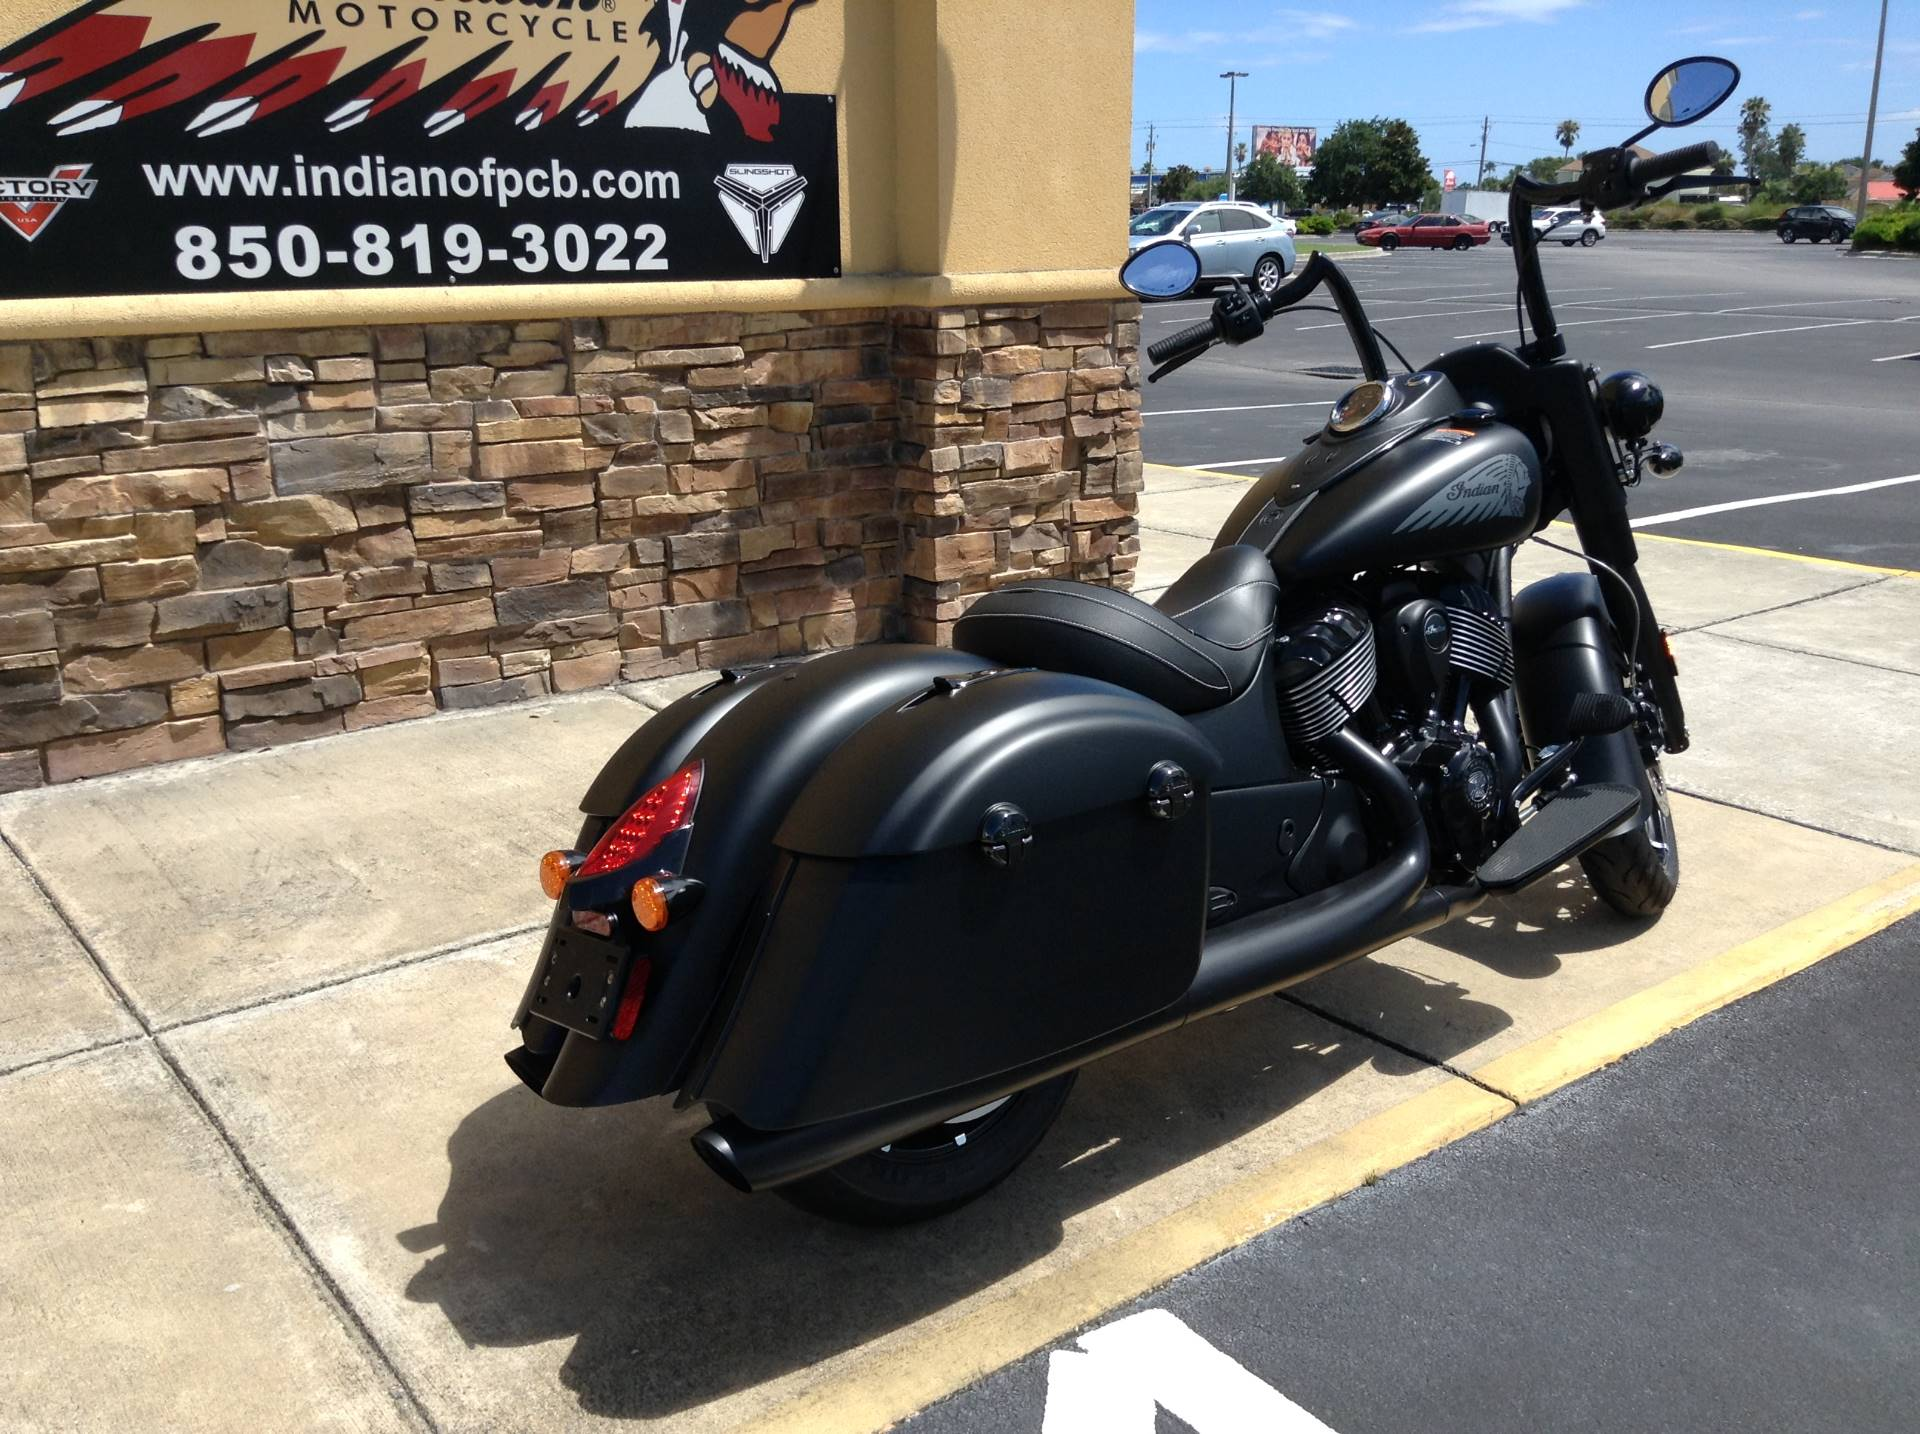 2019 Indian SPRINGFIELD DARKHORSE in Panama City Beach, Florida - Photo 3